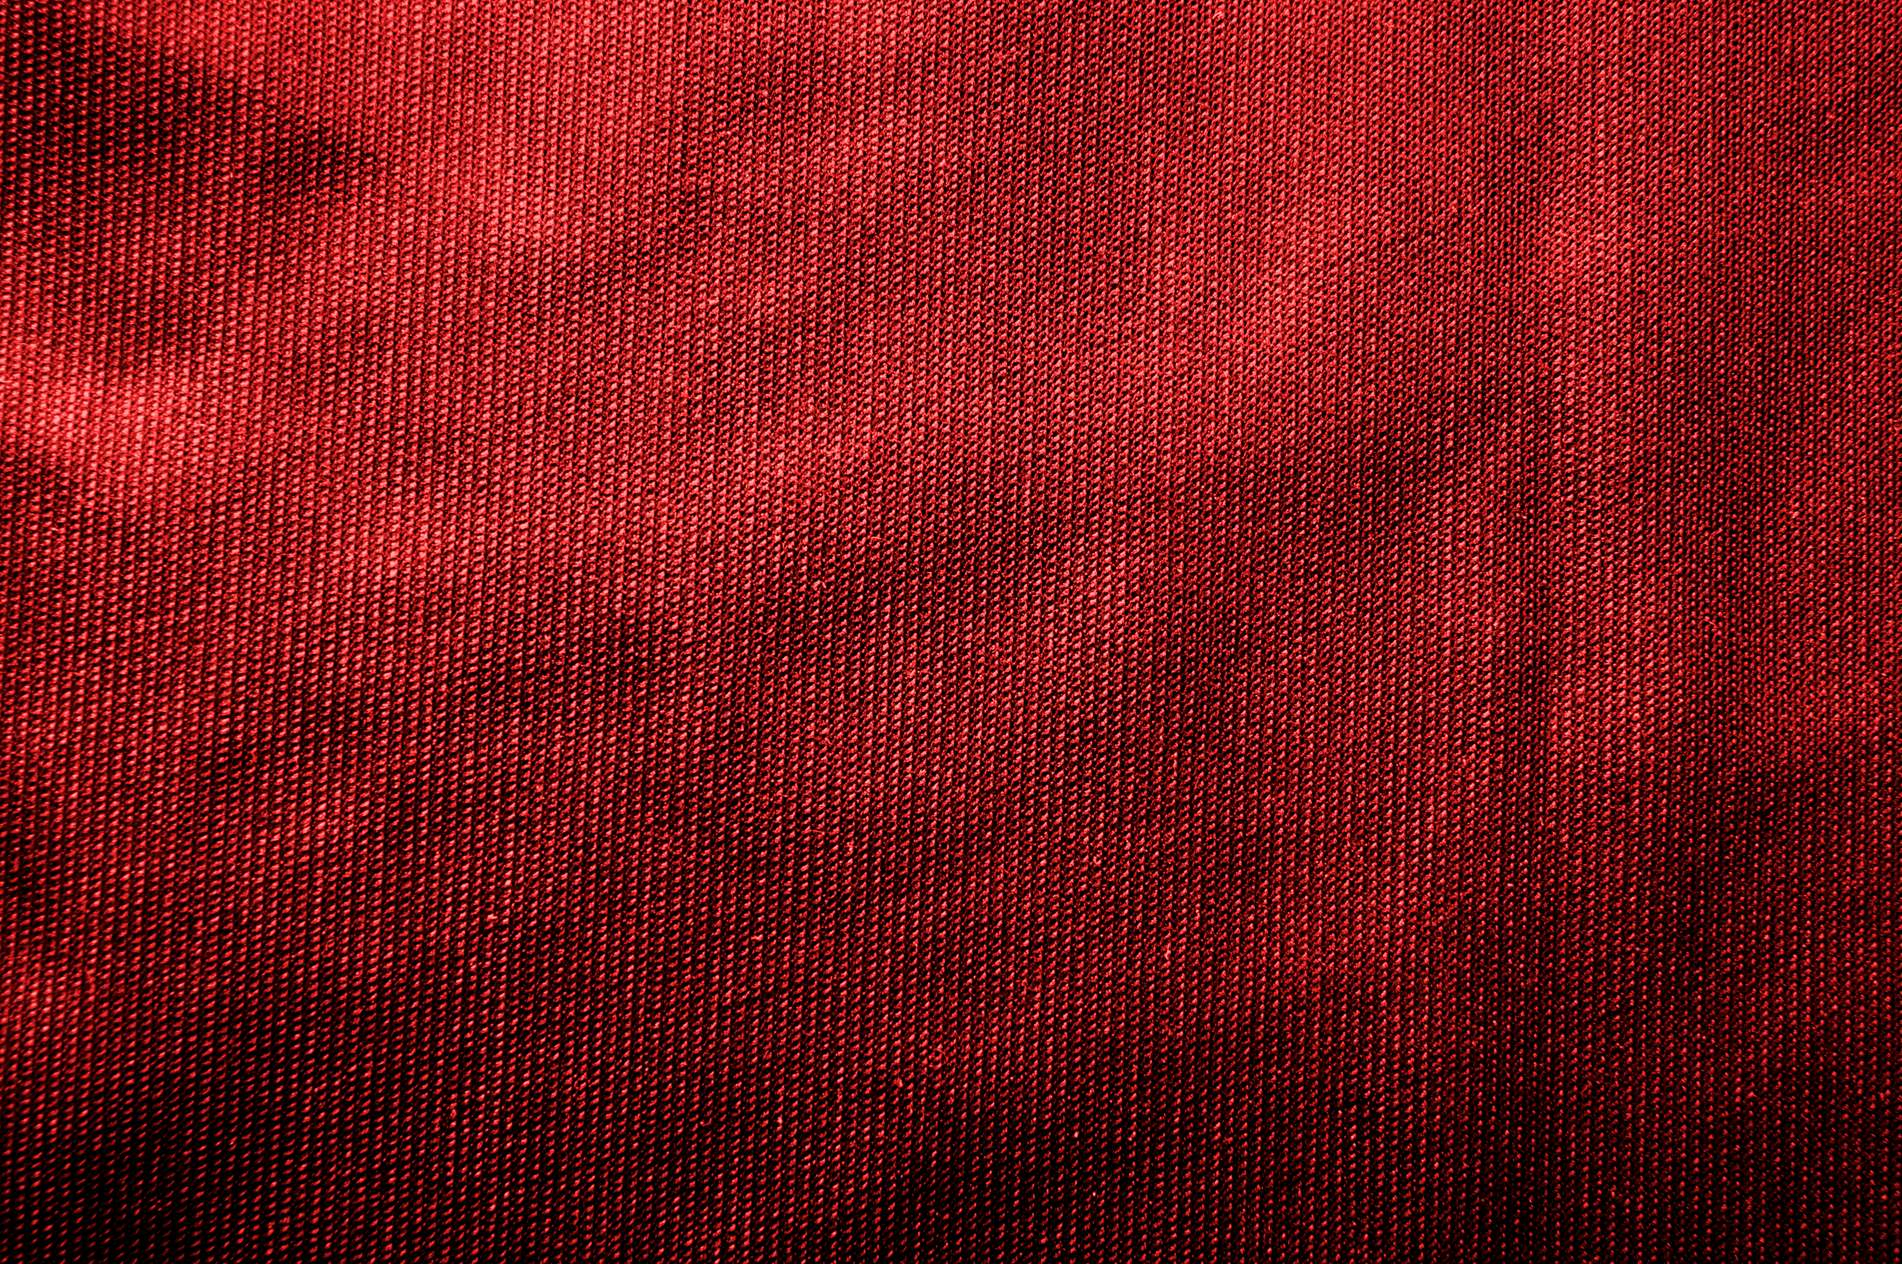 Red fabric texture background photohdx for Red space fabric